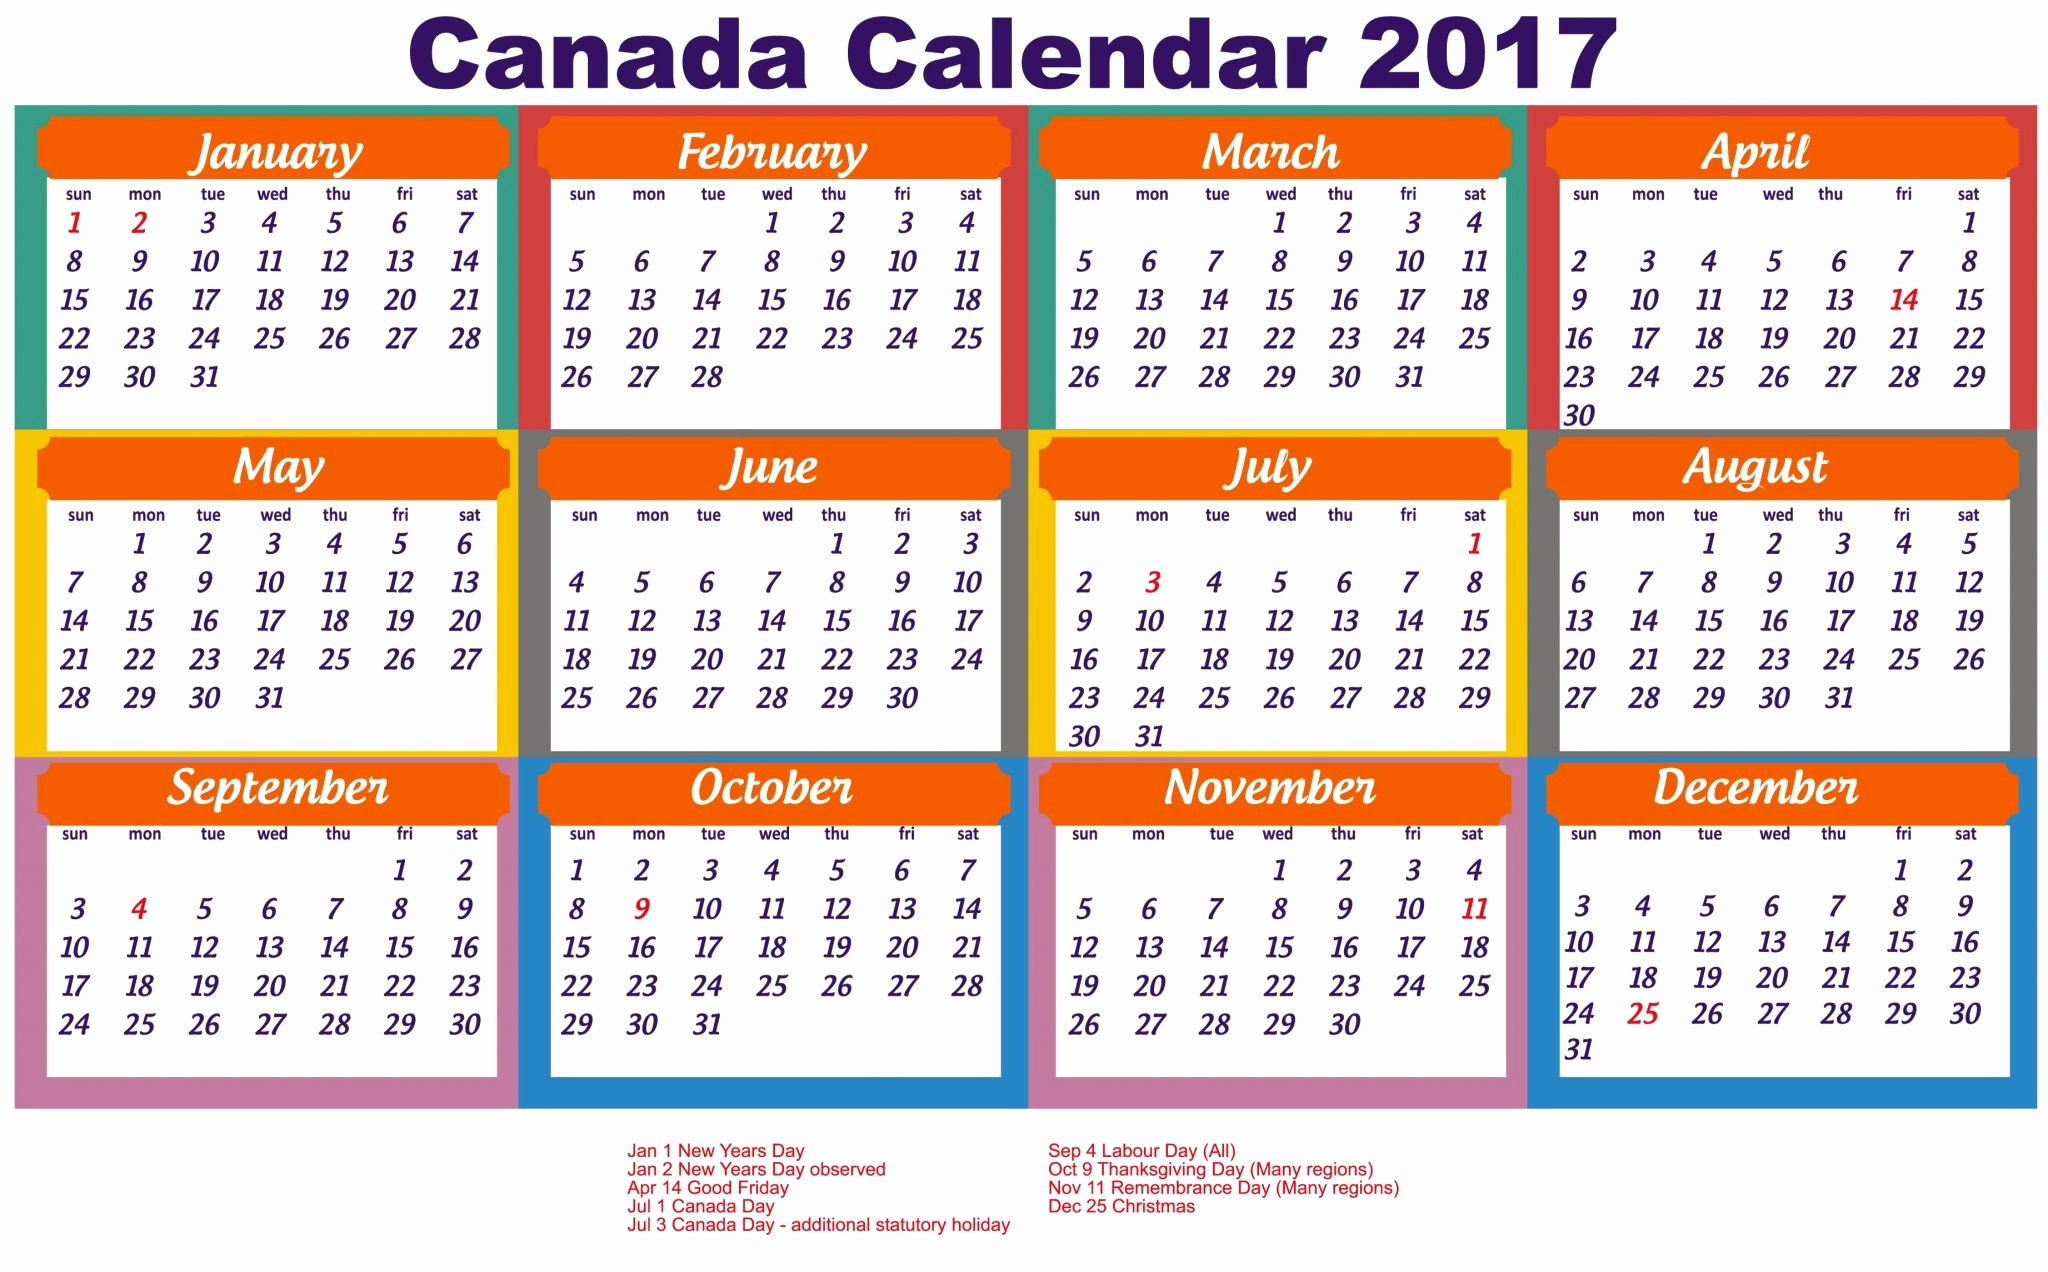 Excel Calendar 2017 with Holidays Elegant Imminent Fittings Calendar 2017 Printable Uk with Bank